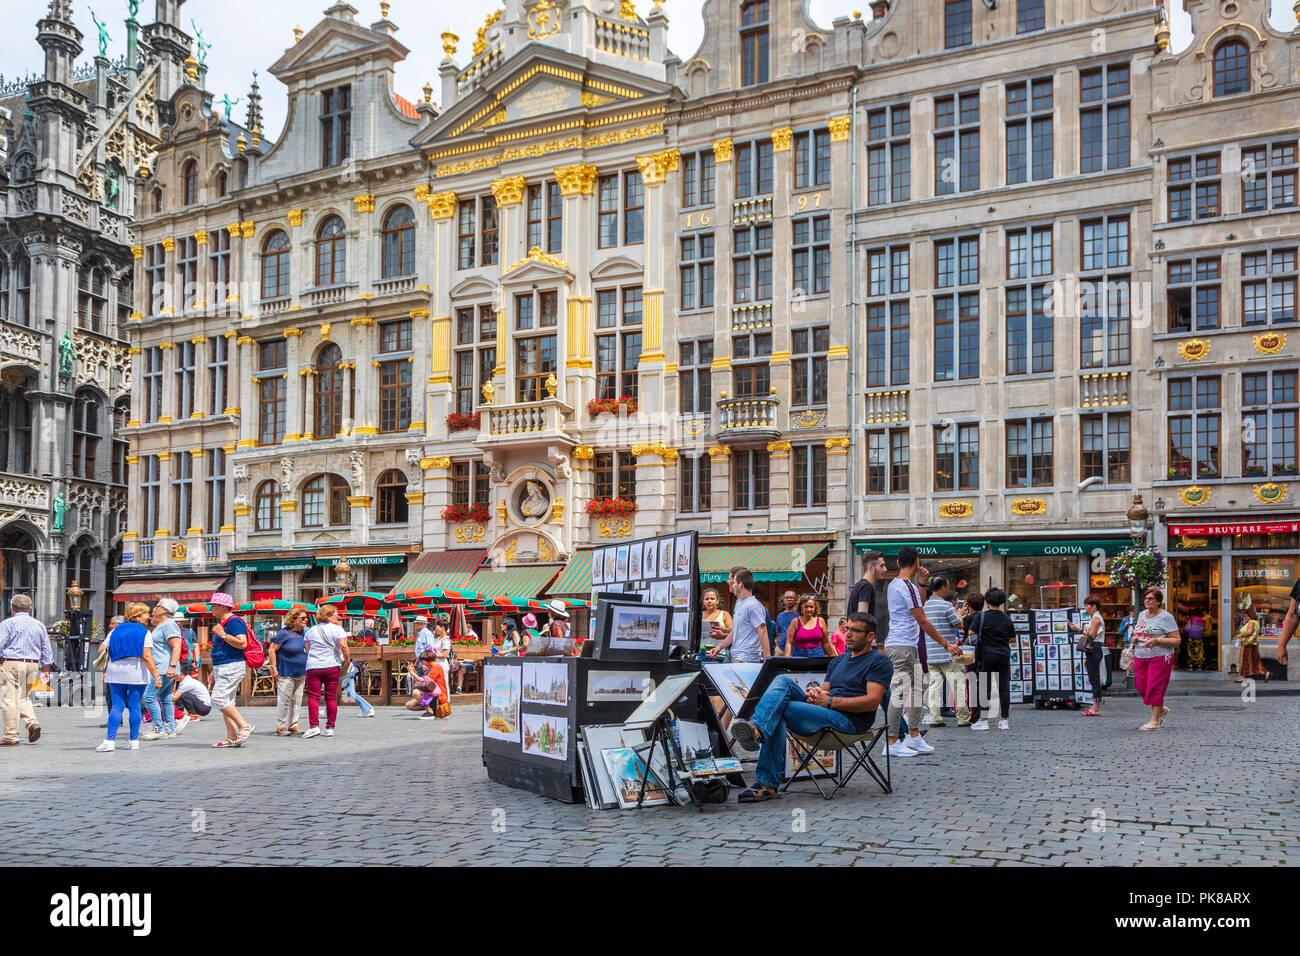 15th century architecture in Grand Place, Brussels, a UNESCO World Heritage site, Brussels, Belgium - Stock Image